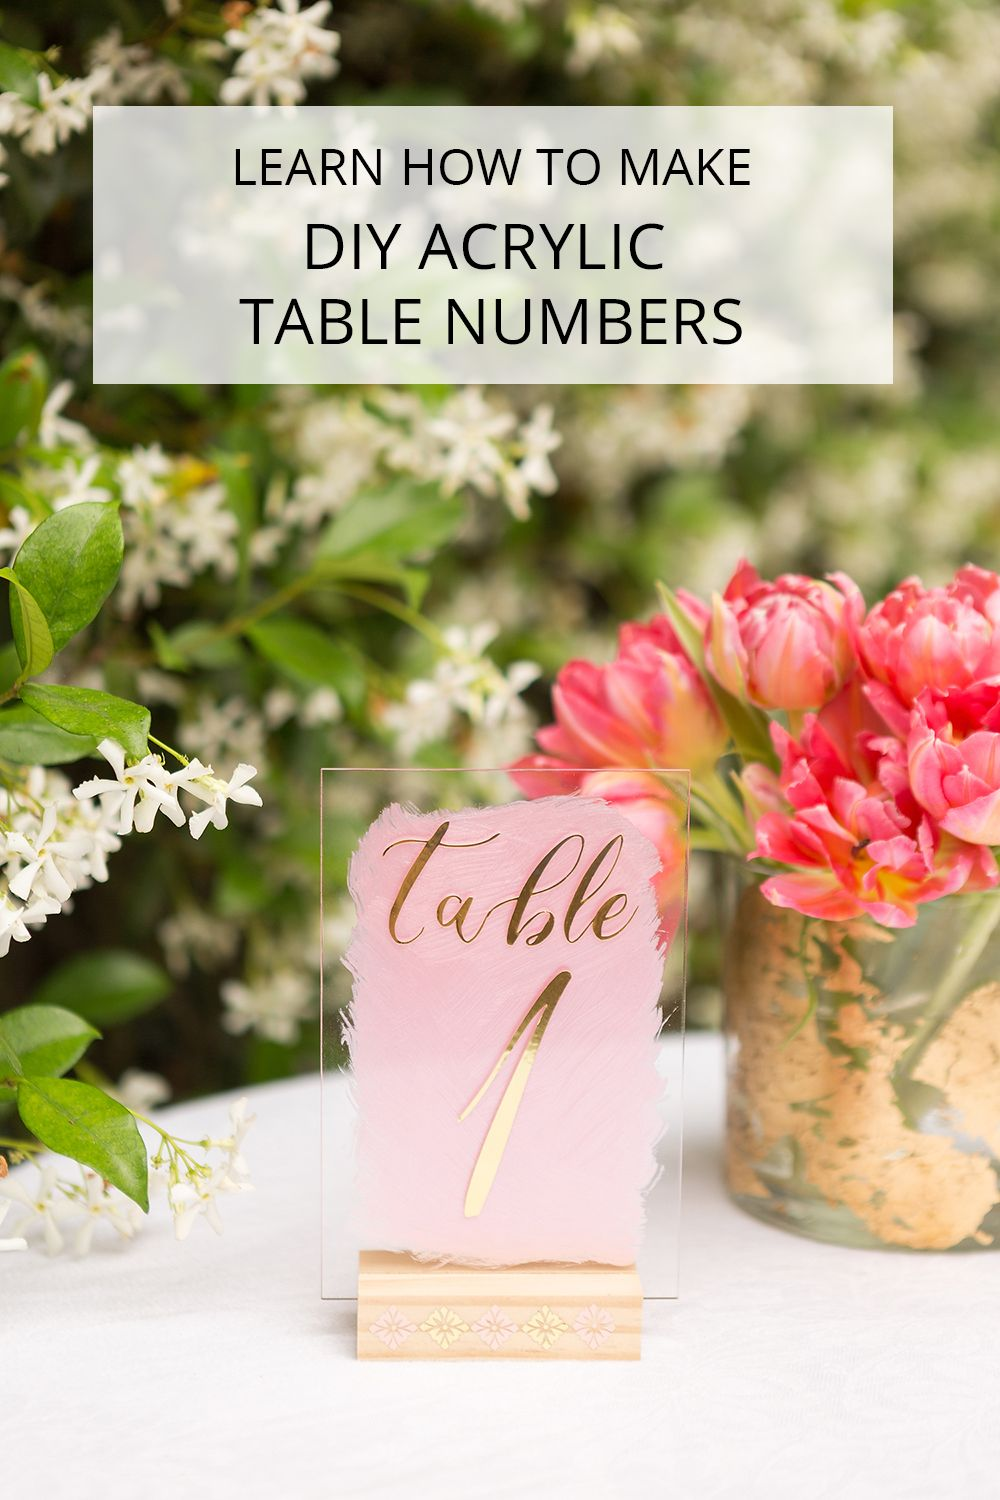 DIY Acrylic Table Numbers With Cricut And Martha Stewart